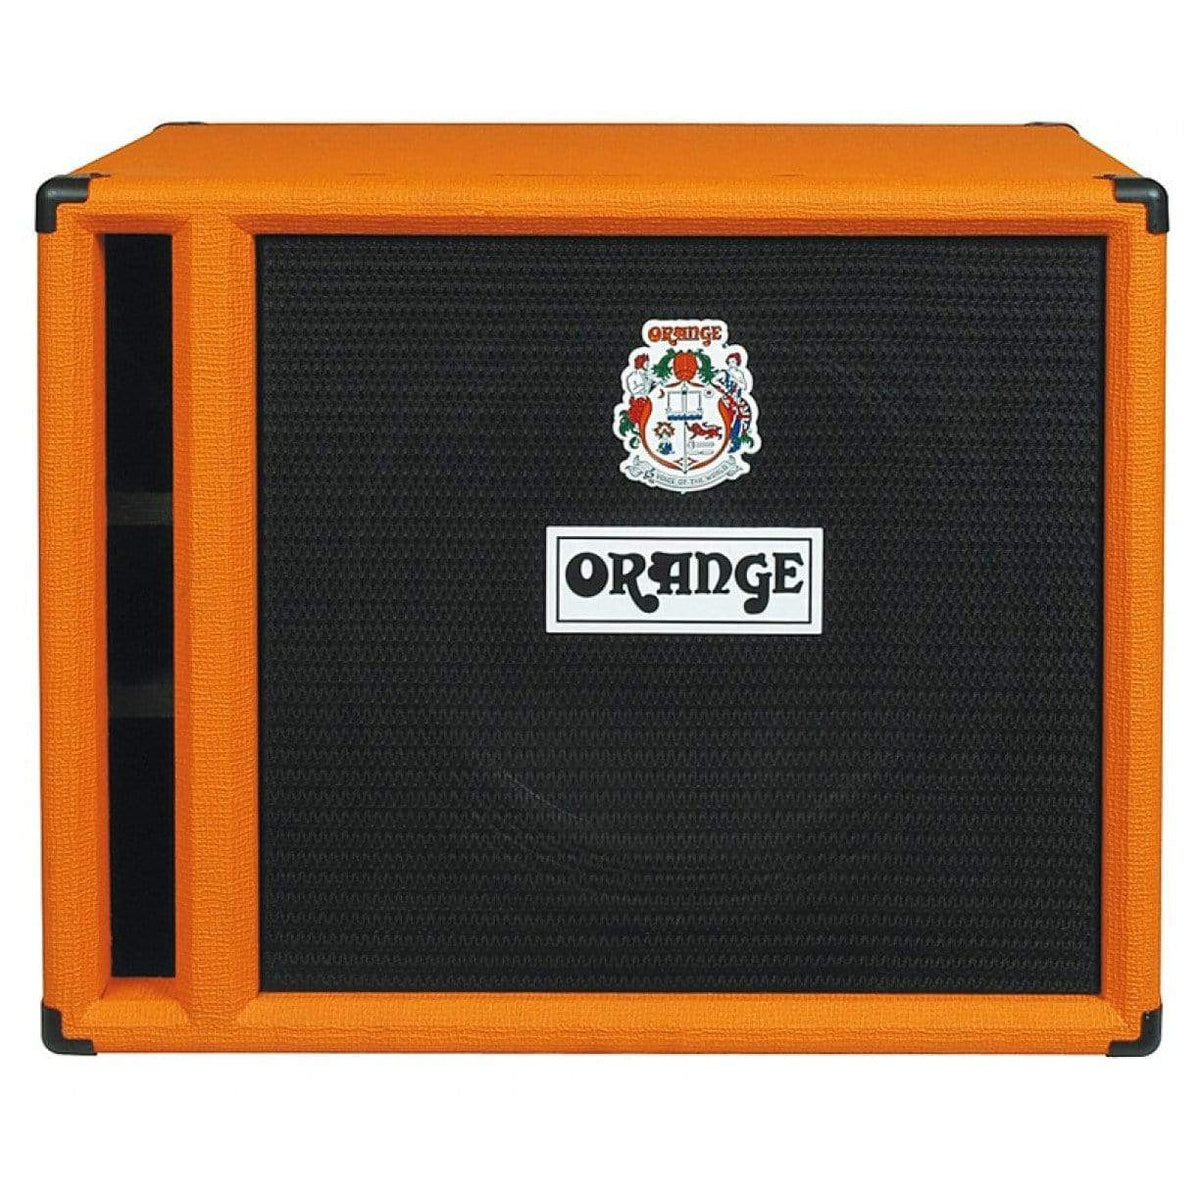 Orange OBC 115 Bass Amplifier Cabinets